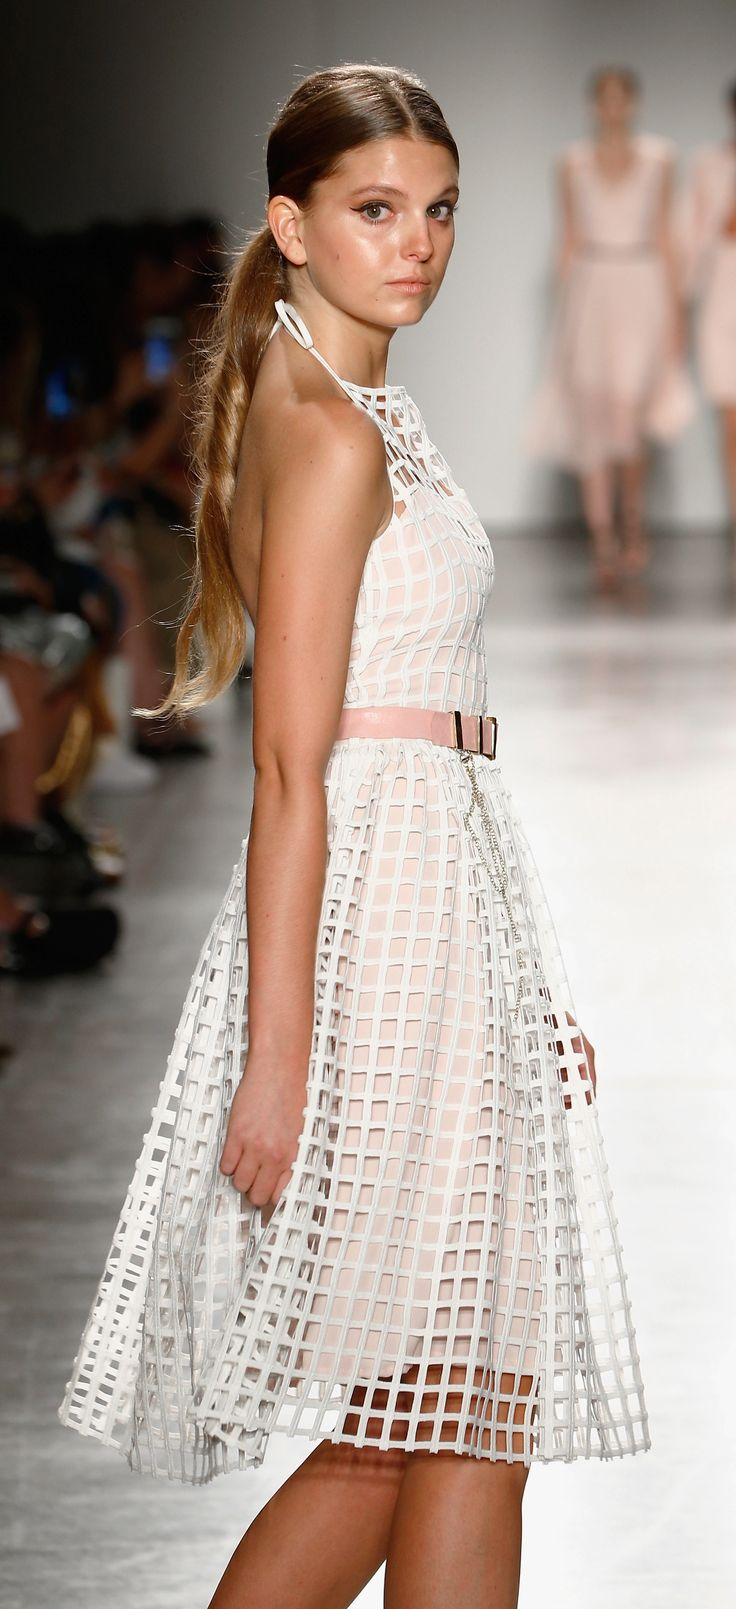 NYFW - lace cage halter dress. Australian designers Sui Generis Style, allows you to customize each design on their website! www.suigeneris-style.com  #custom #NYFW #Australiandesigner #suigeneris #cage #lace #wedding